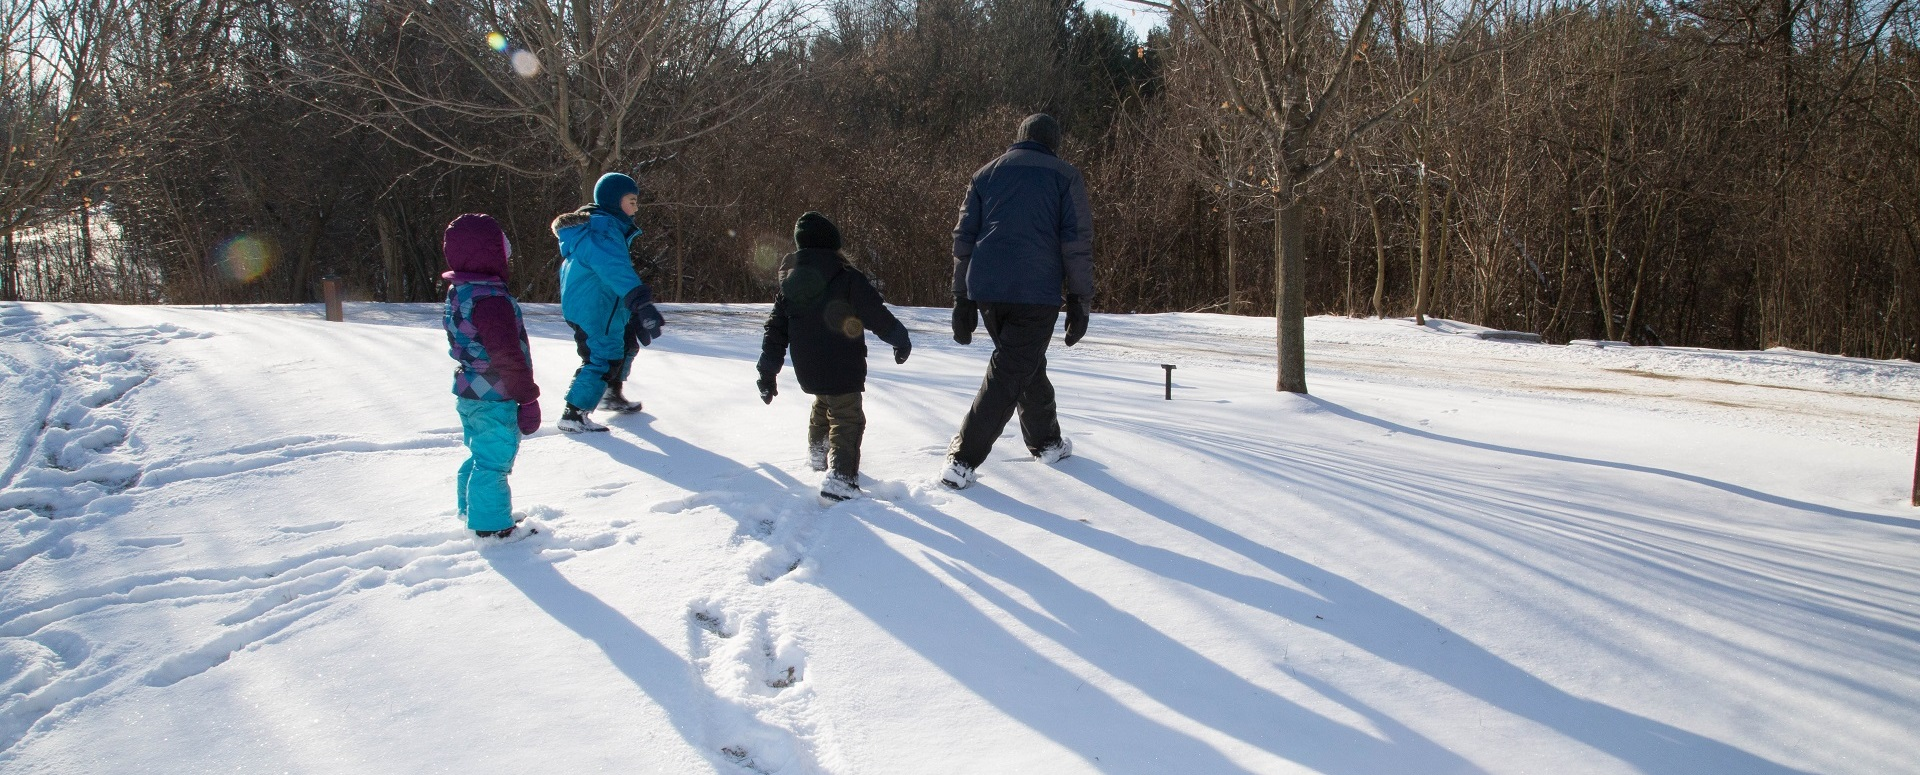 Students and teacher explore Kortright Centre nature trail in winter